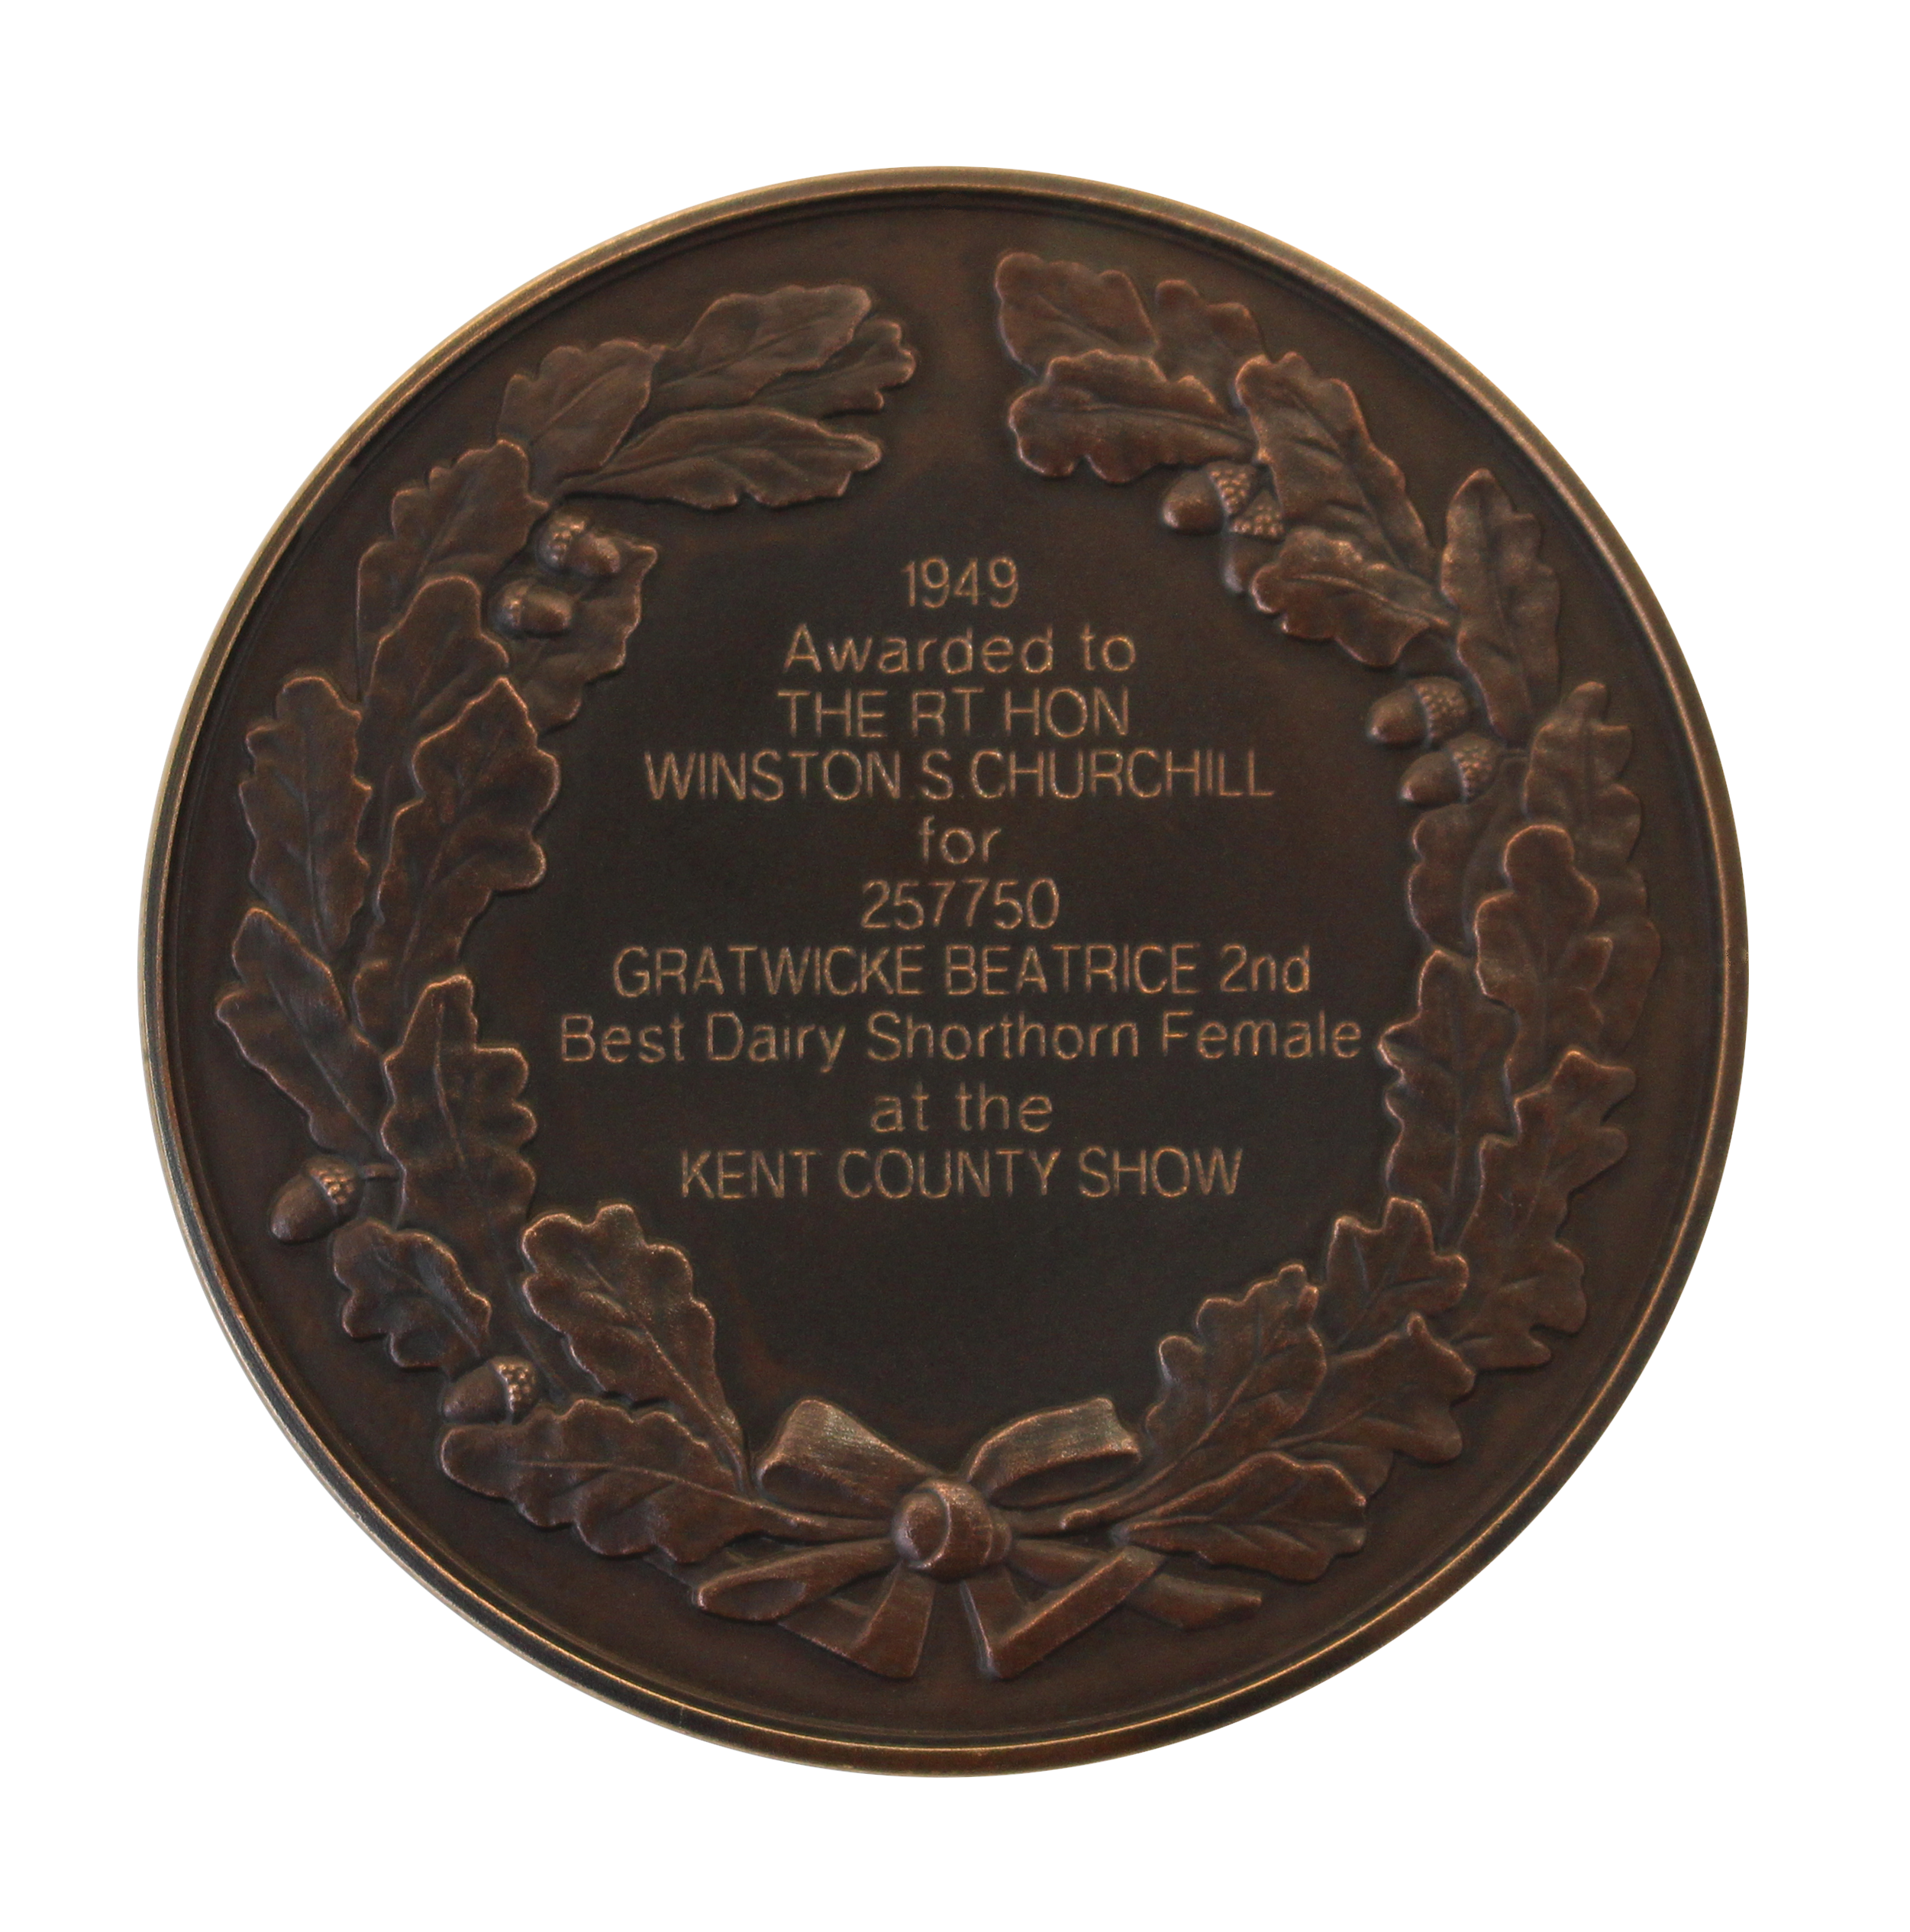 National Trust. Winston Churchill's Shorthorn Cow Medal Reverse